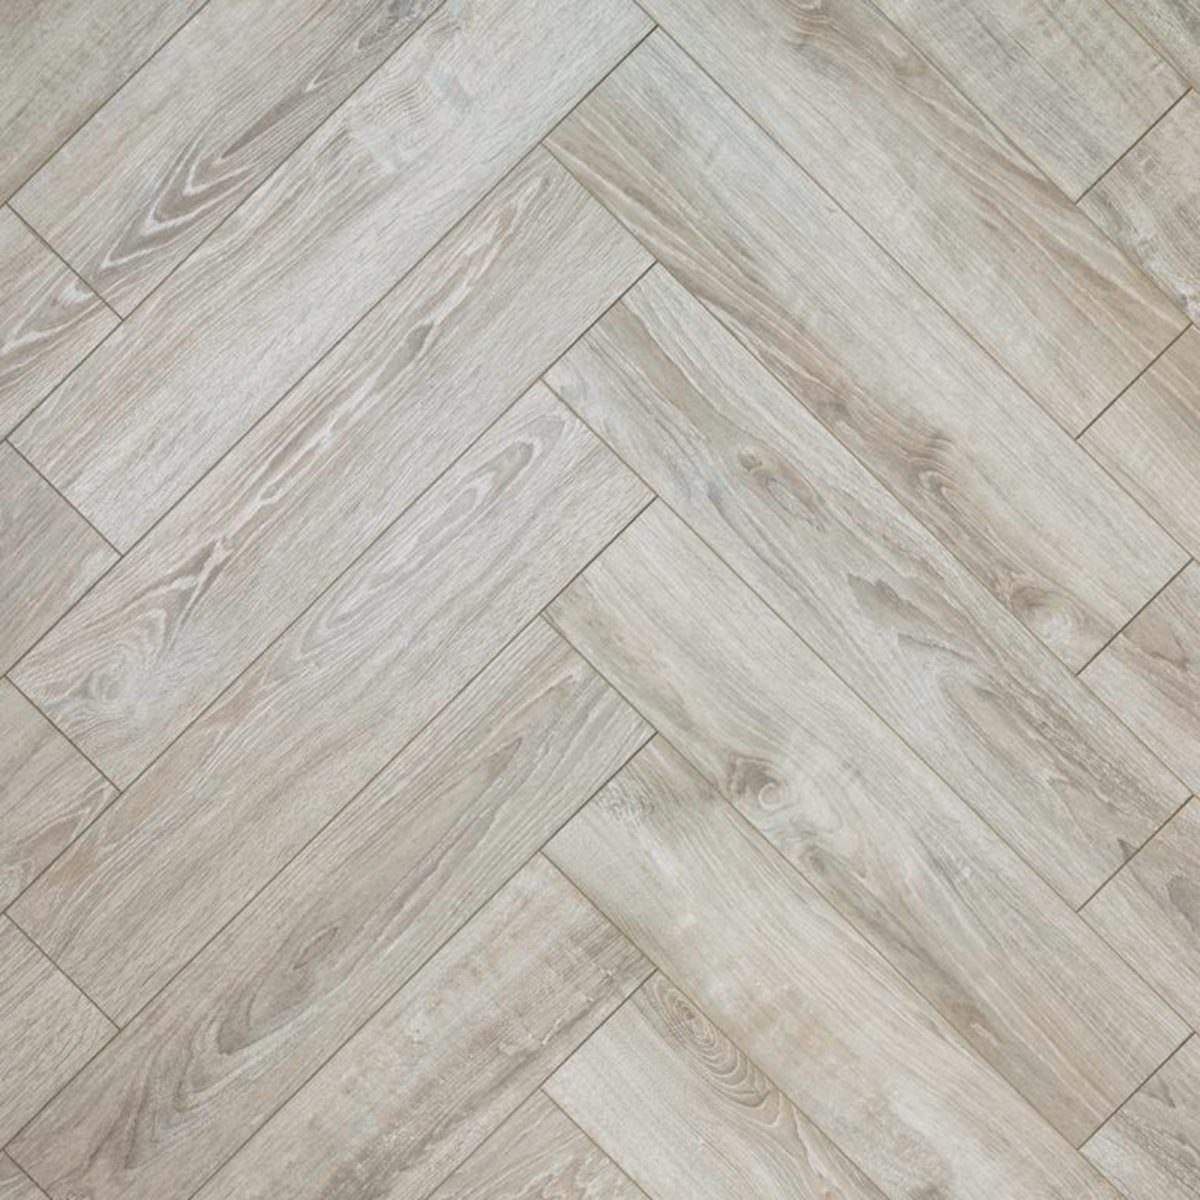 Nature AC6 Herringbone 12mm Pearl Oak Laminate Flooring